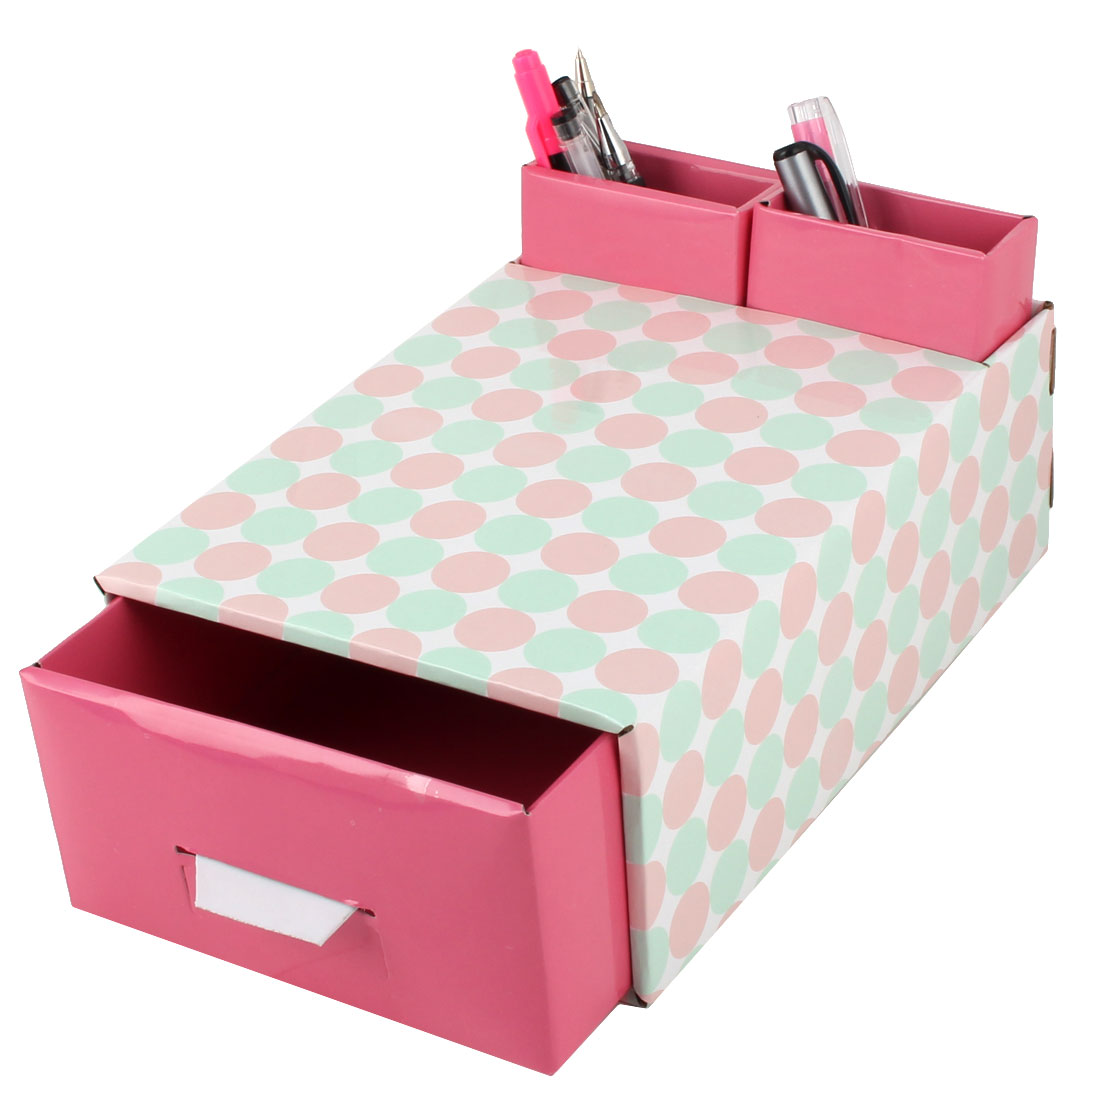 Unique Bargains Home Paper Dot Pattern DIY Foldable Book Holder Container Storage Box Case Red - image 5 de 6